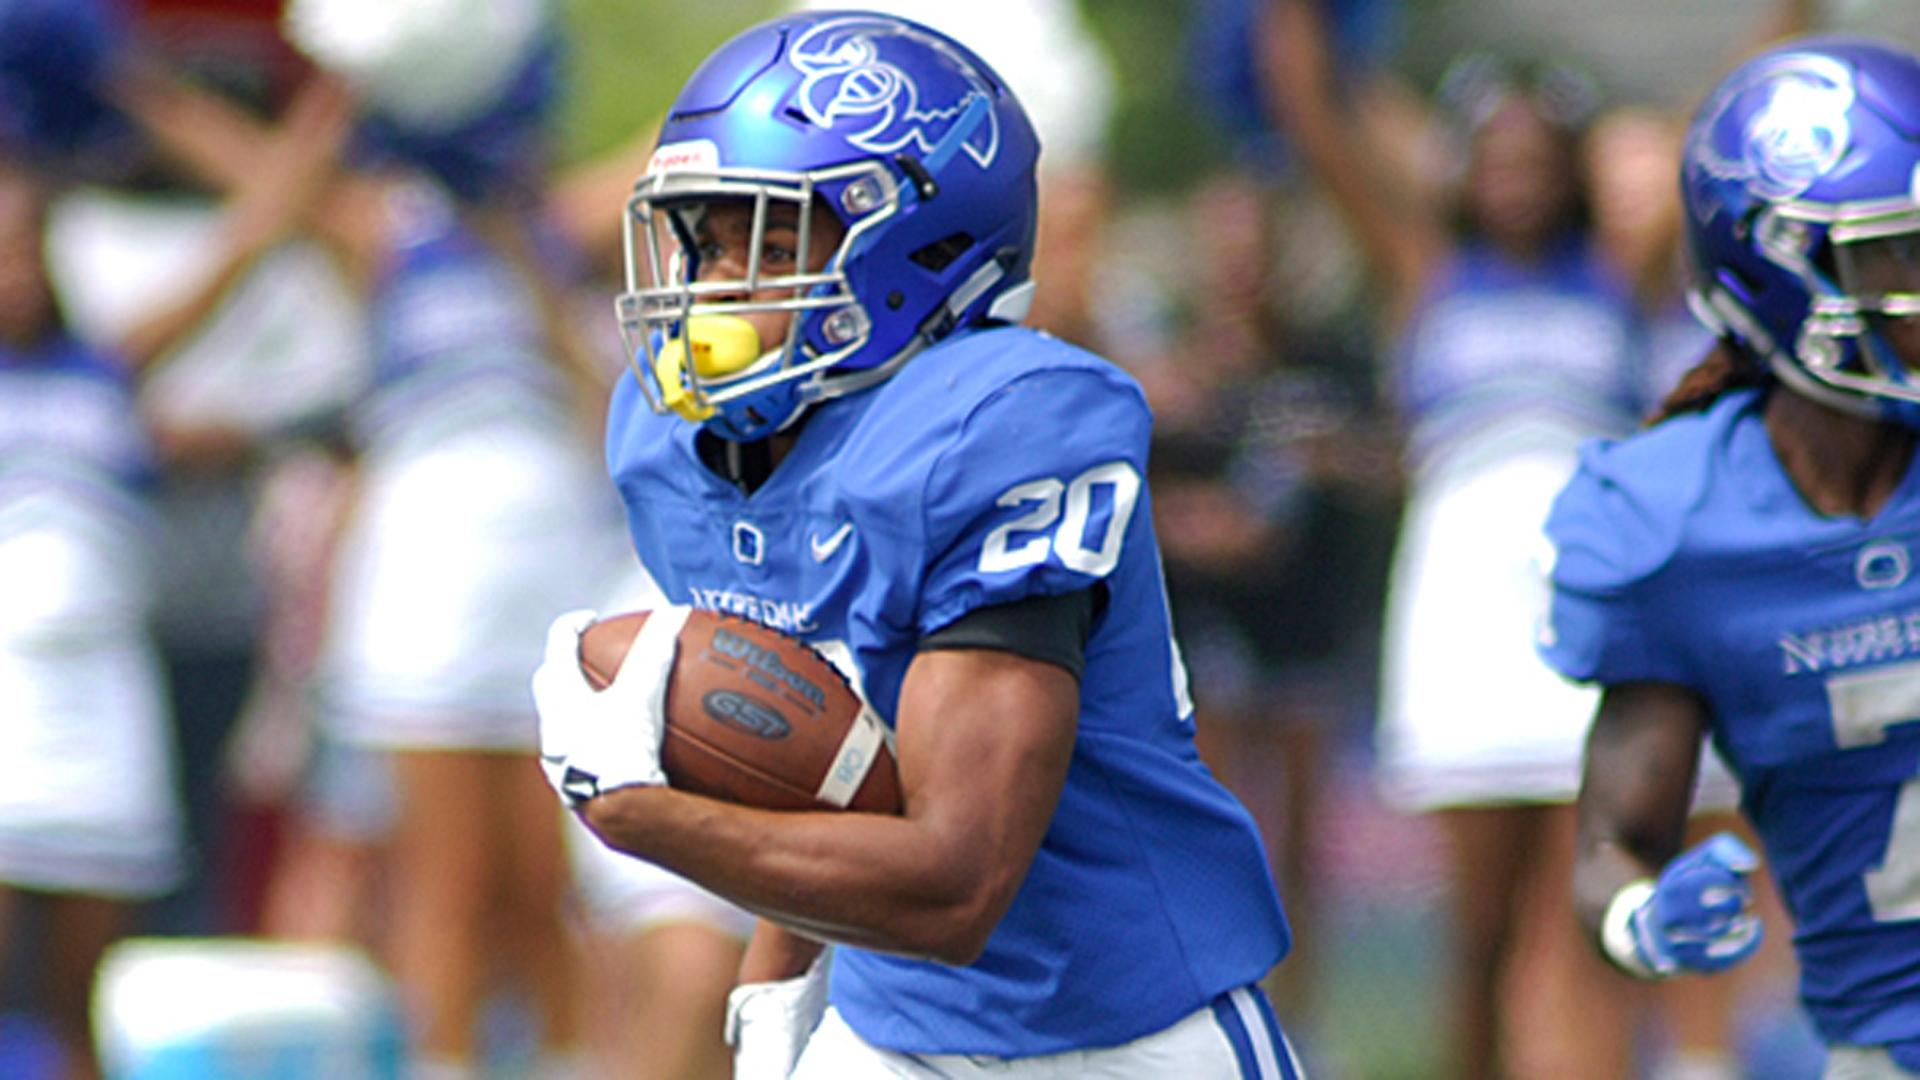 Notre Dame College's Jaleel McLaughlin is one of the nine finalists.